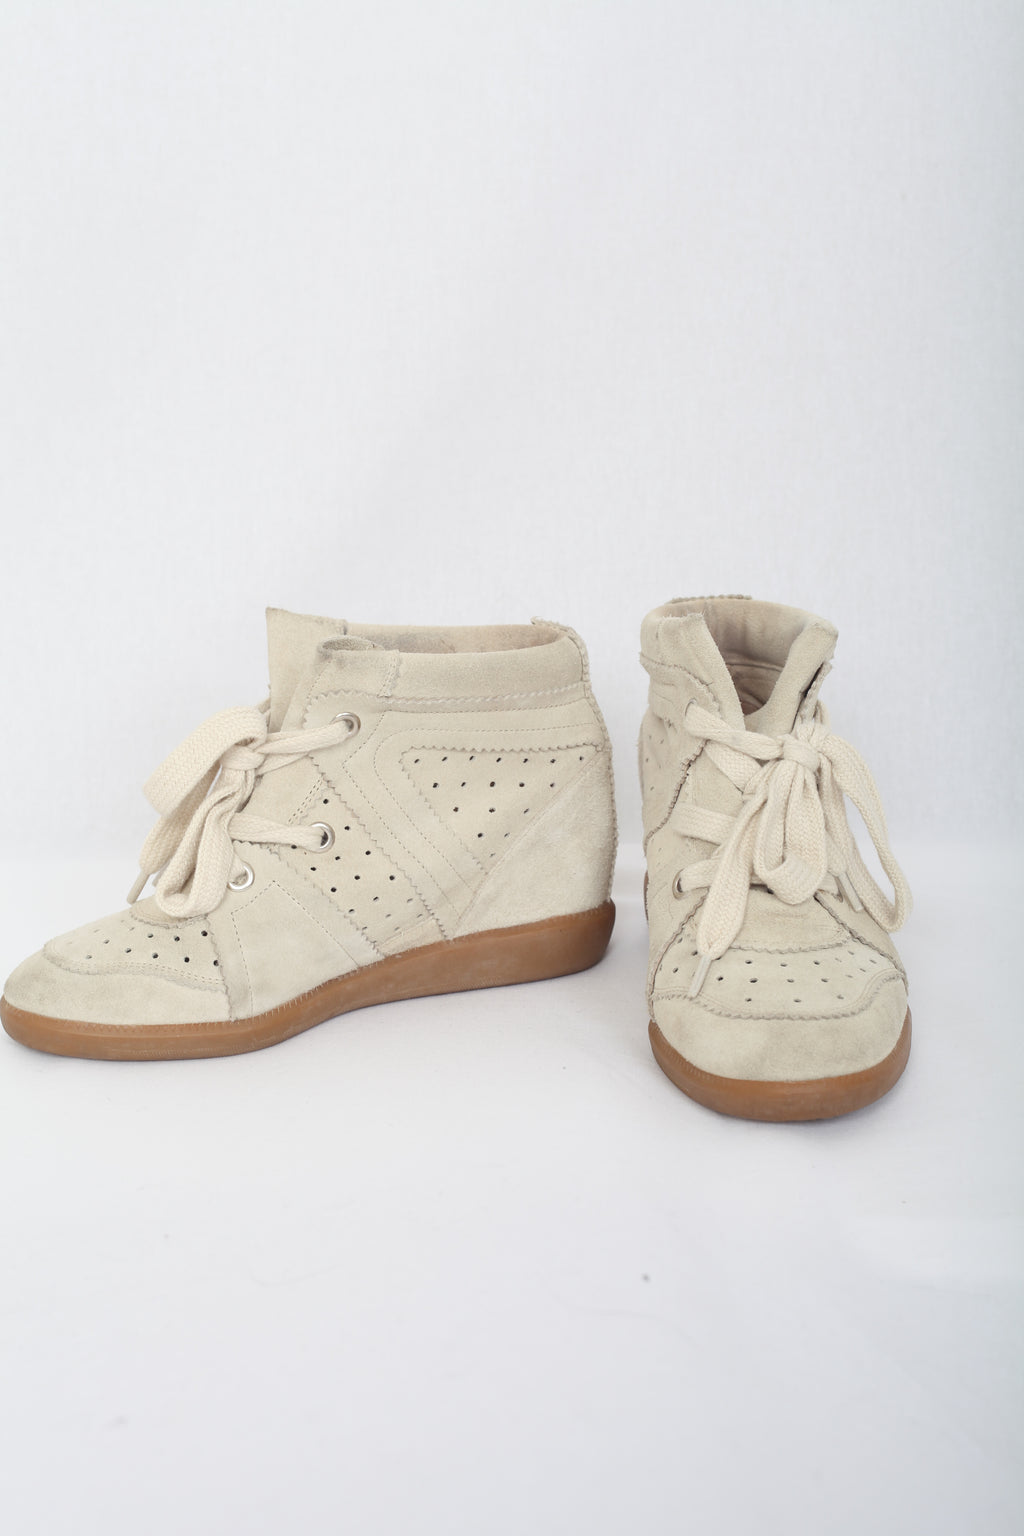 Isabel Marant Sneakers - 38